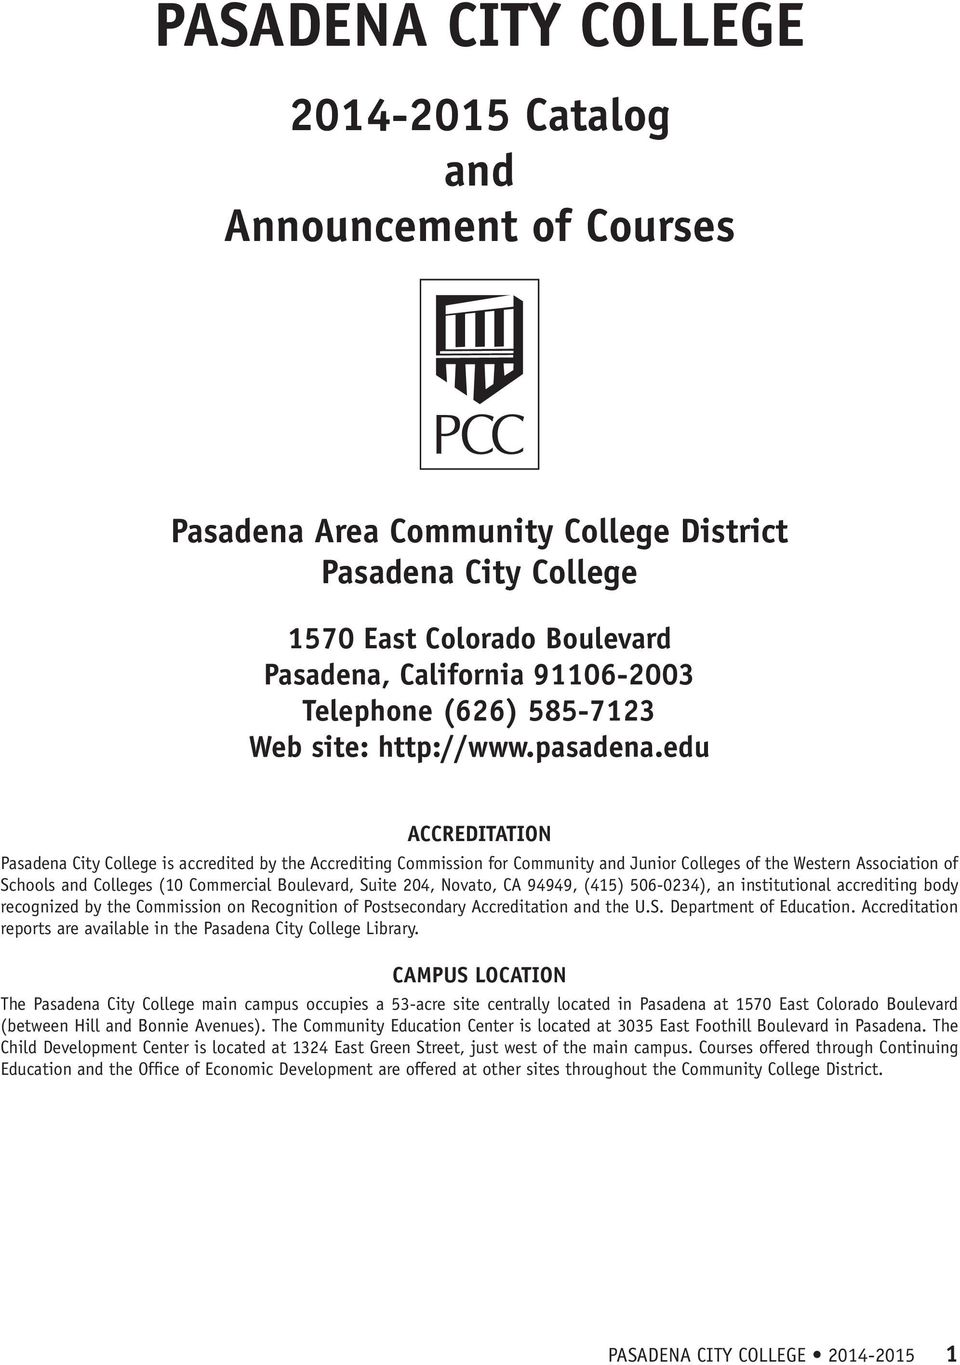 edu ACCREDITATION Pasadena City College is accredited by the Accrediting Commission for Community and Junior Colleges of the Western Association of Schools and Colleges (10 Commercial Boulevard,